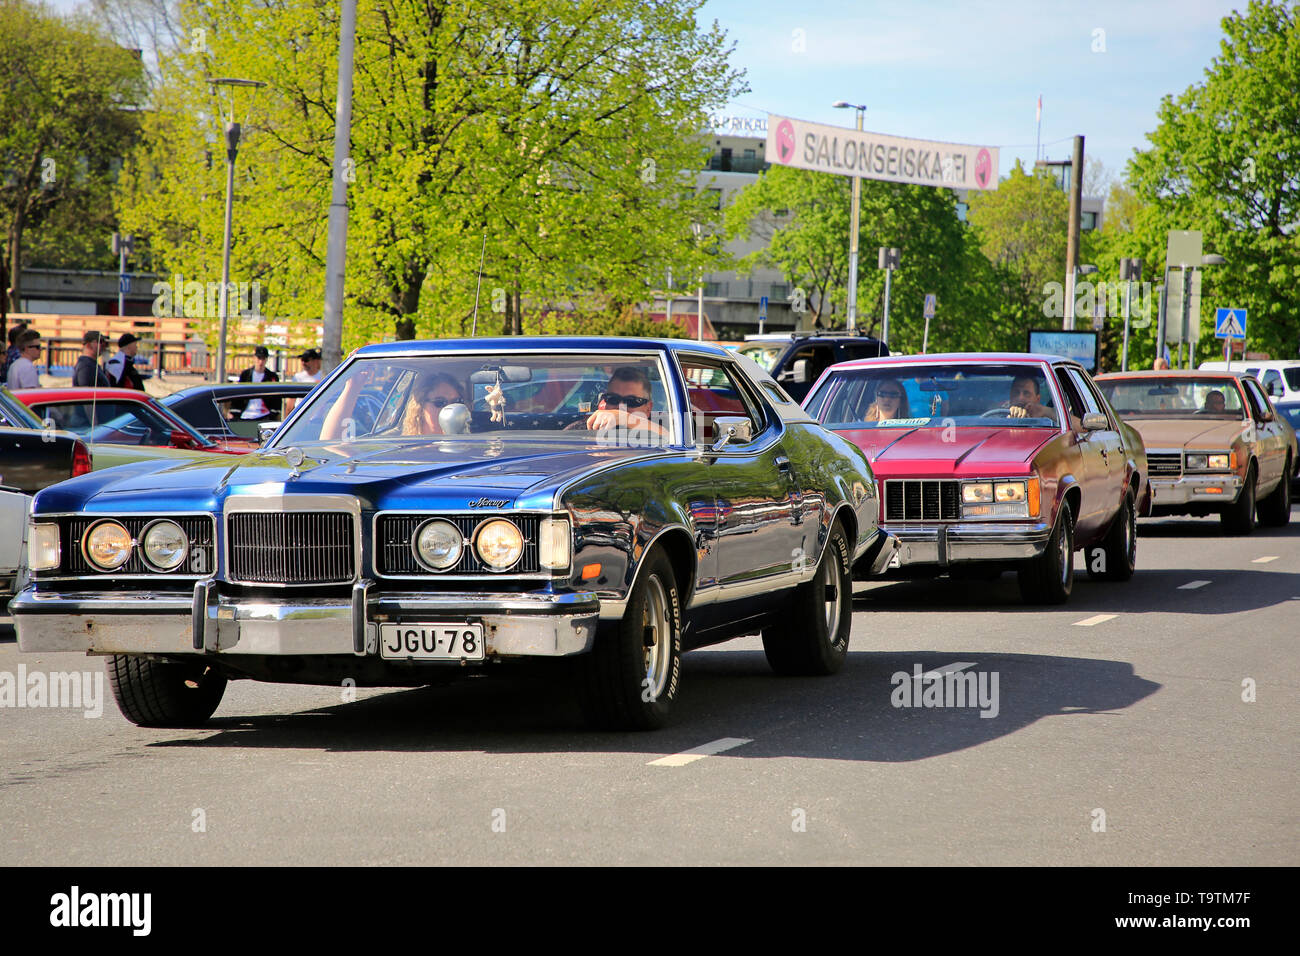 Salo, Finland. May 18, 2019. Classic cars driving along street to participate in the gathering of Salon Maisema Cruising 2019. Stock Photo